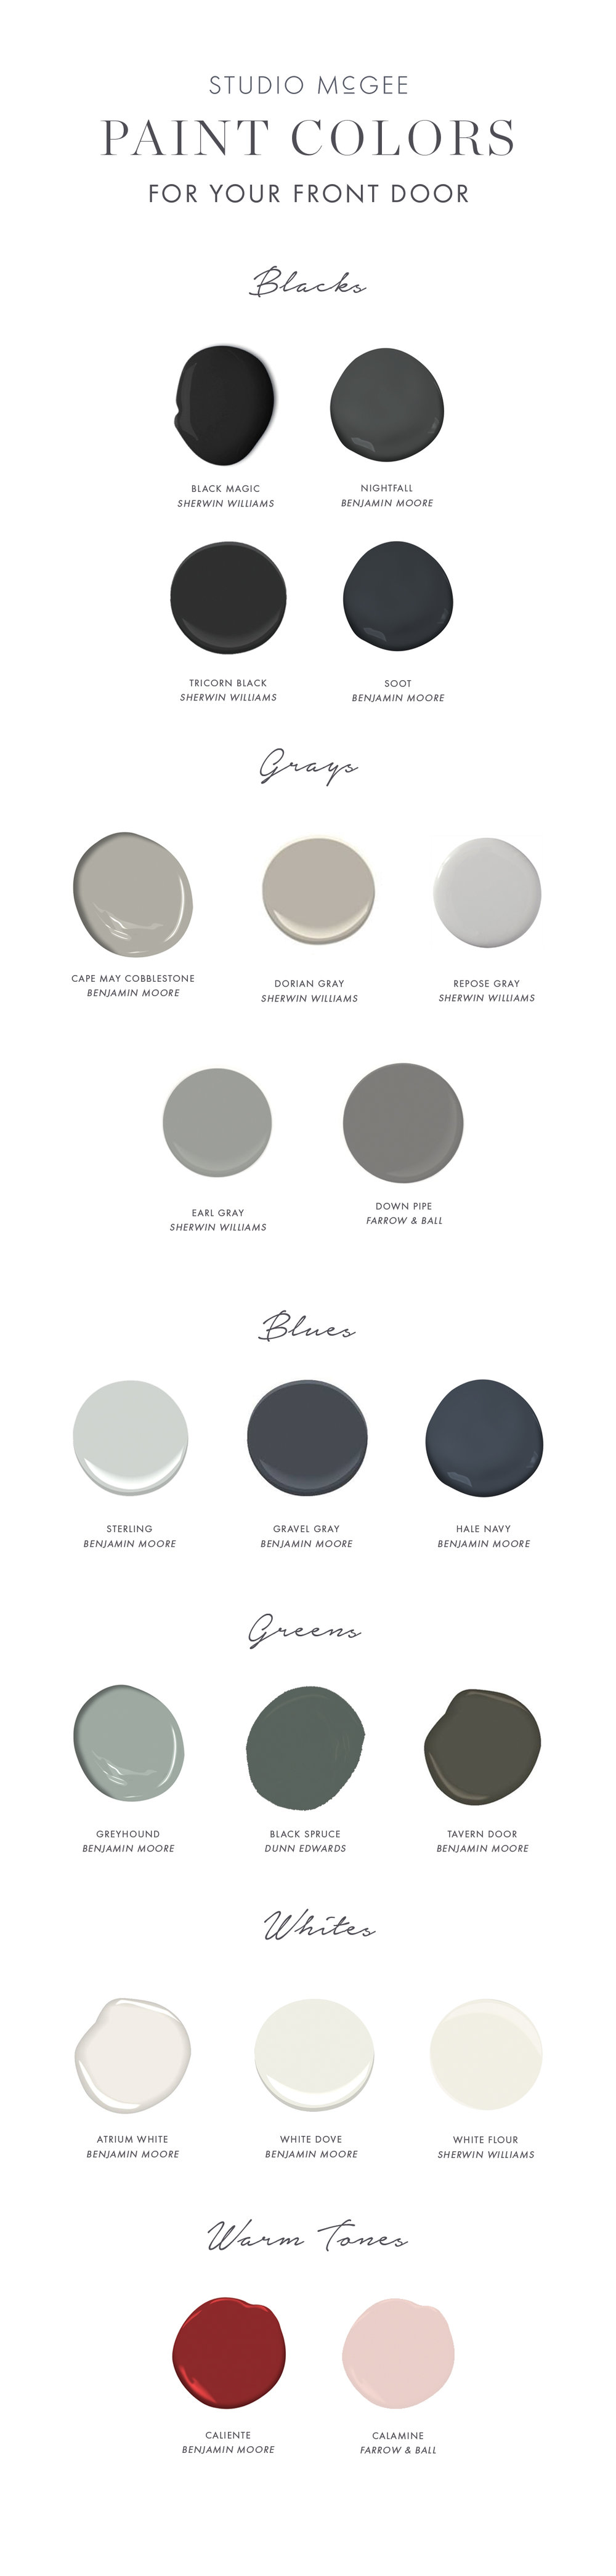 Paint Colors for Your Front Door